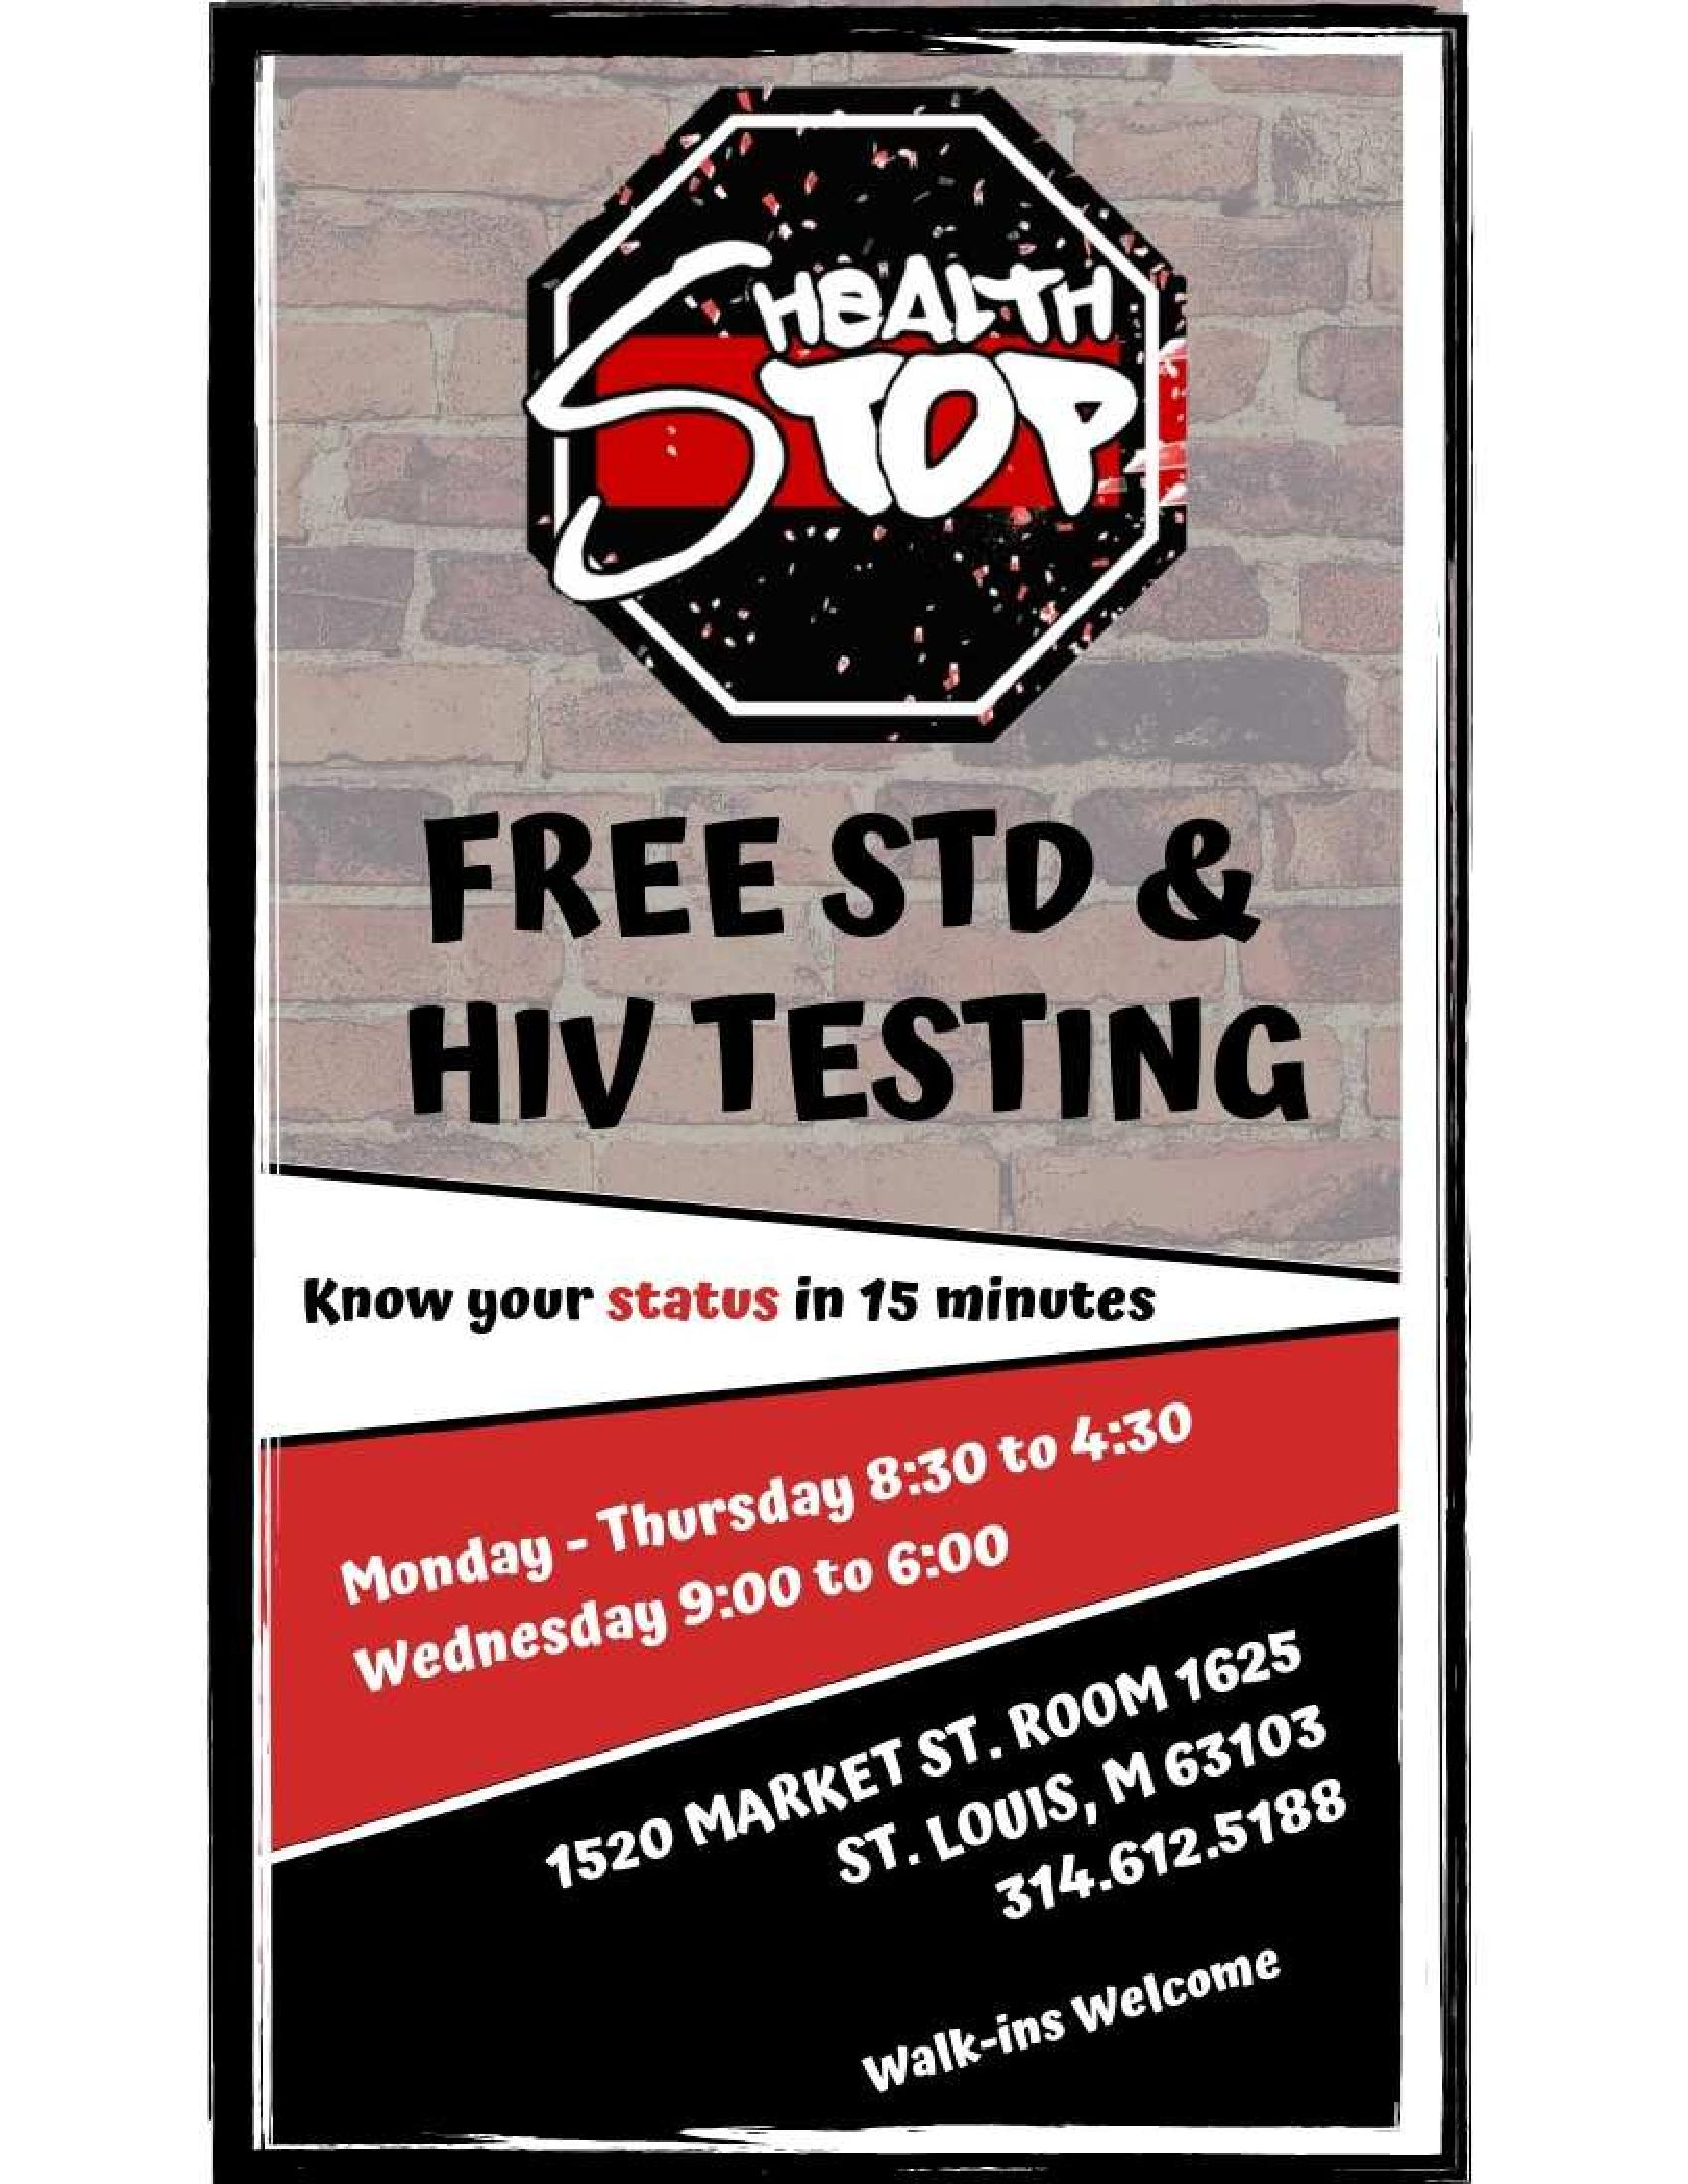 sexual health testing site flyer